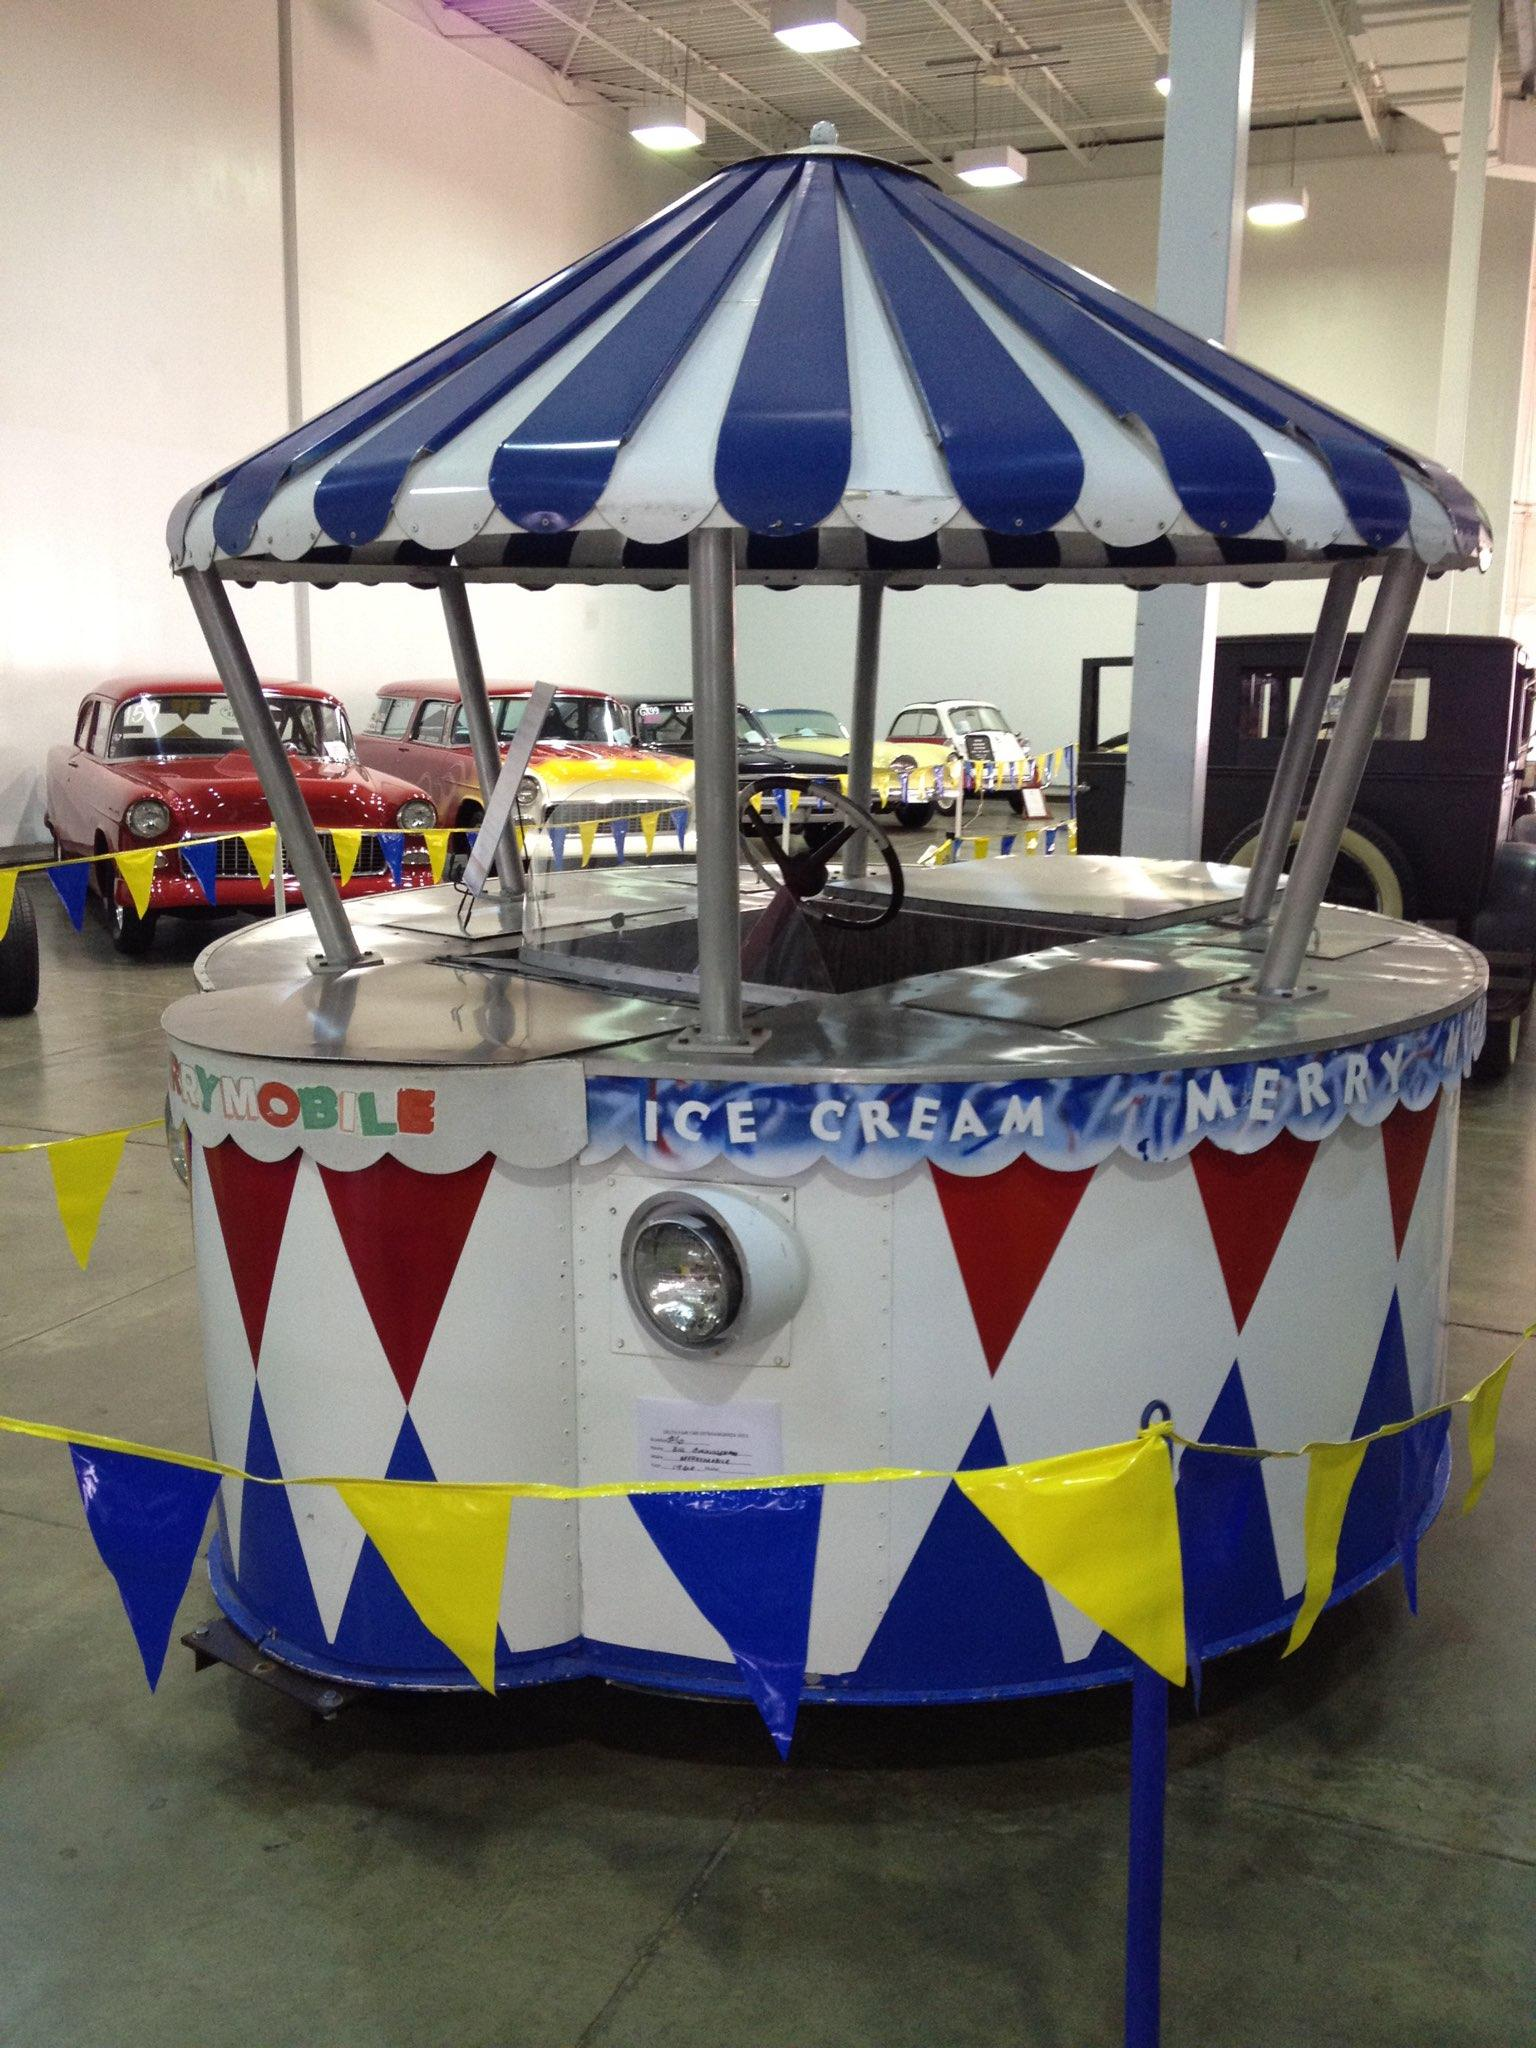 Ice Cream Truck For Sale >> Restored Merrymobile